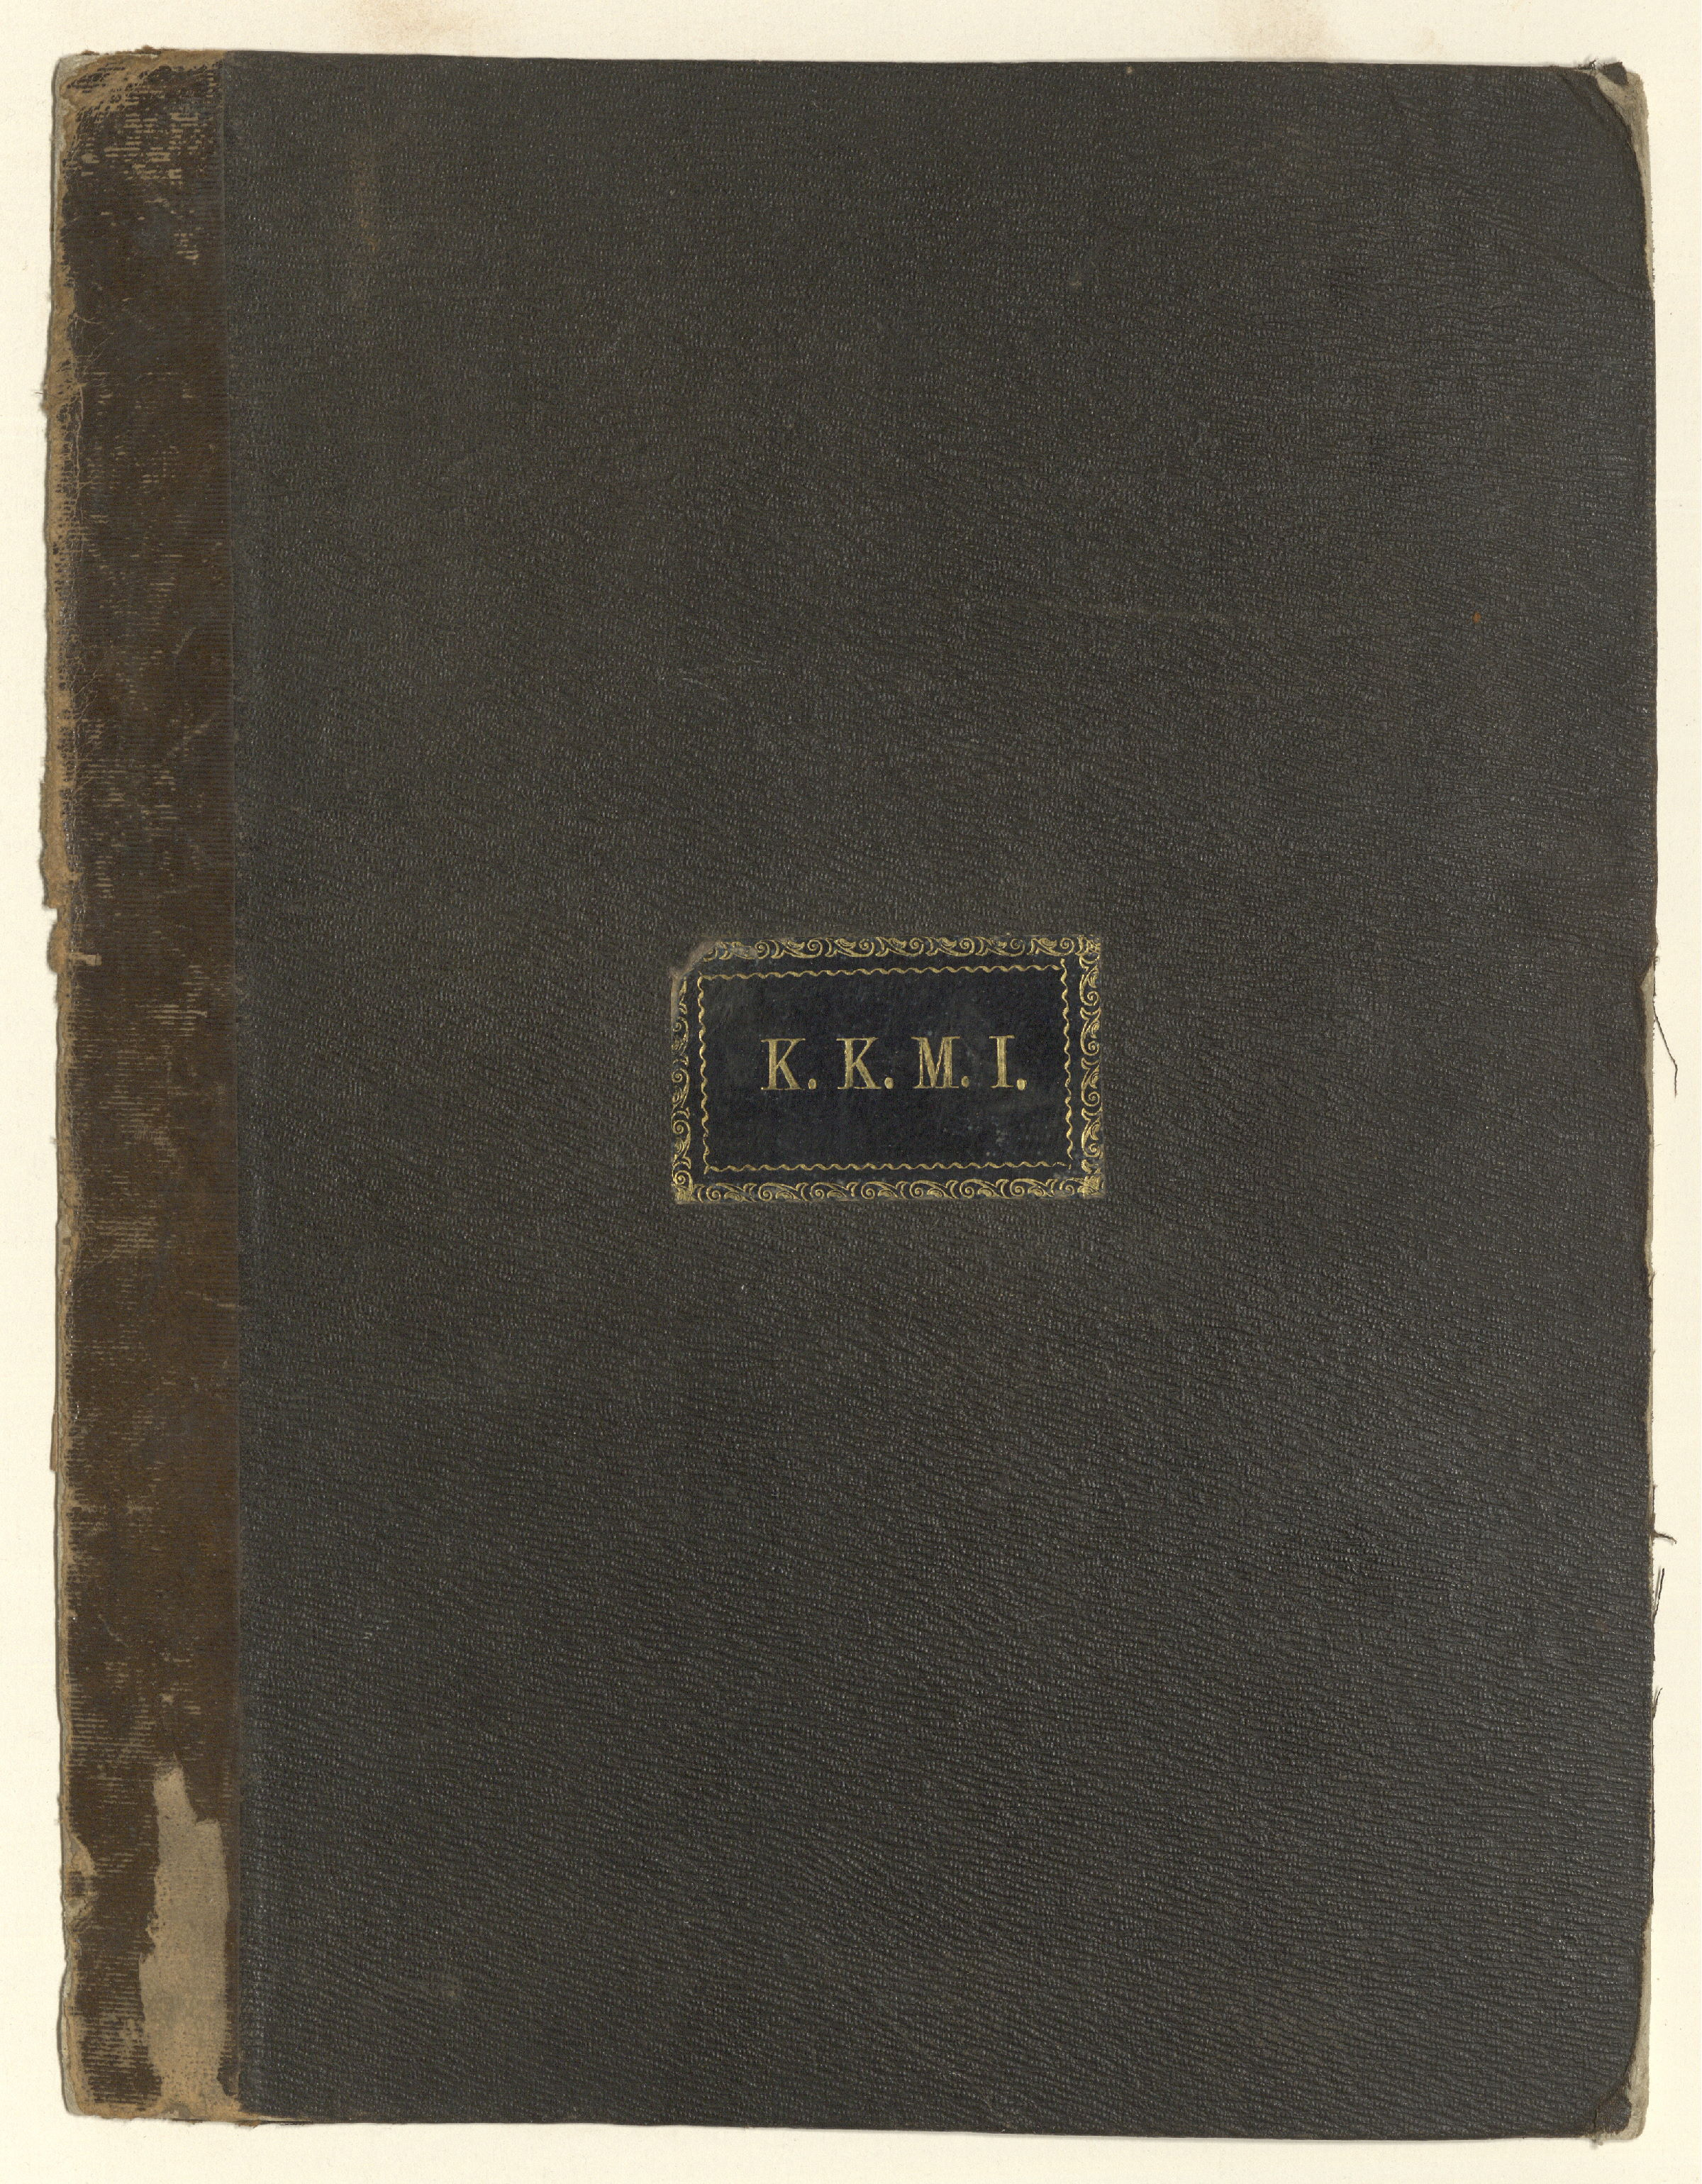 https://www.philageohistory.org/rdic-images/common/get-jpeg-book.cfm/MikvehIsrael.StatementOfReceipts1856-1874.001.FrontCover.jpg